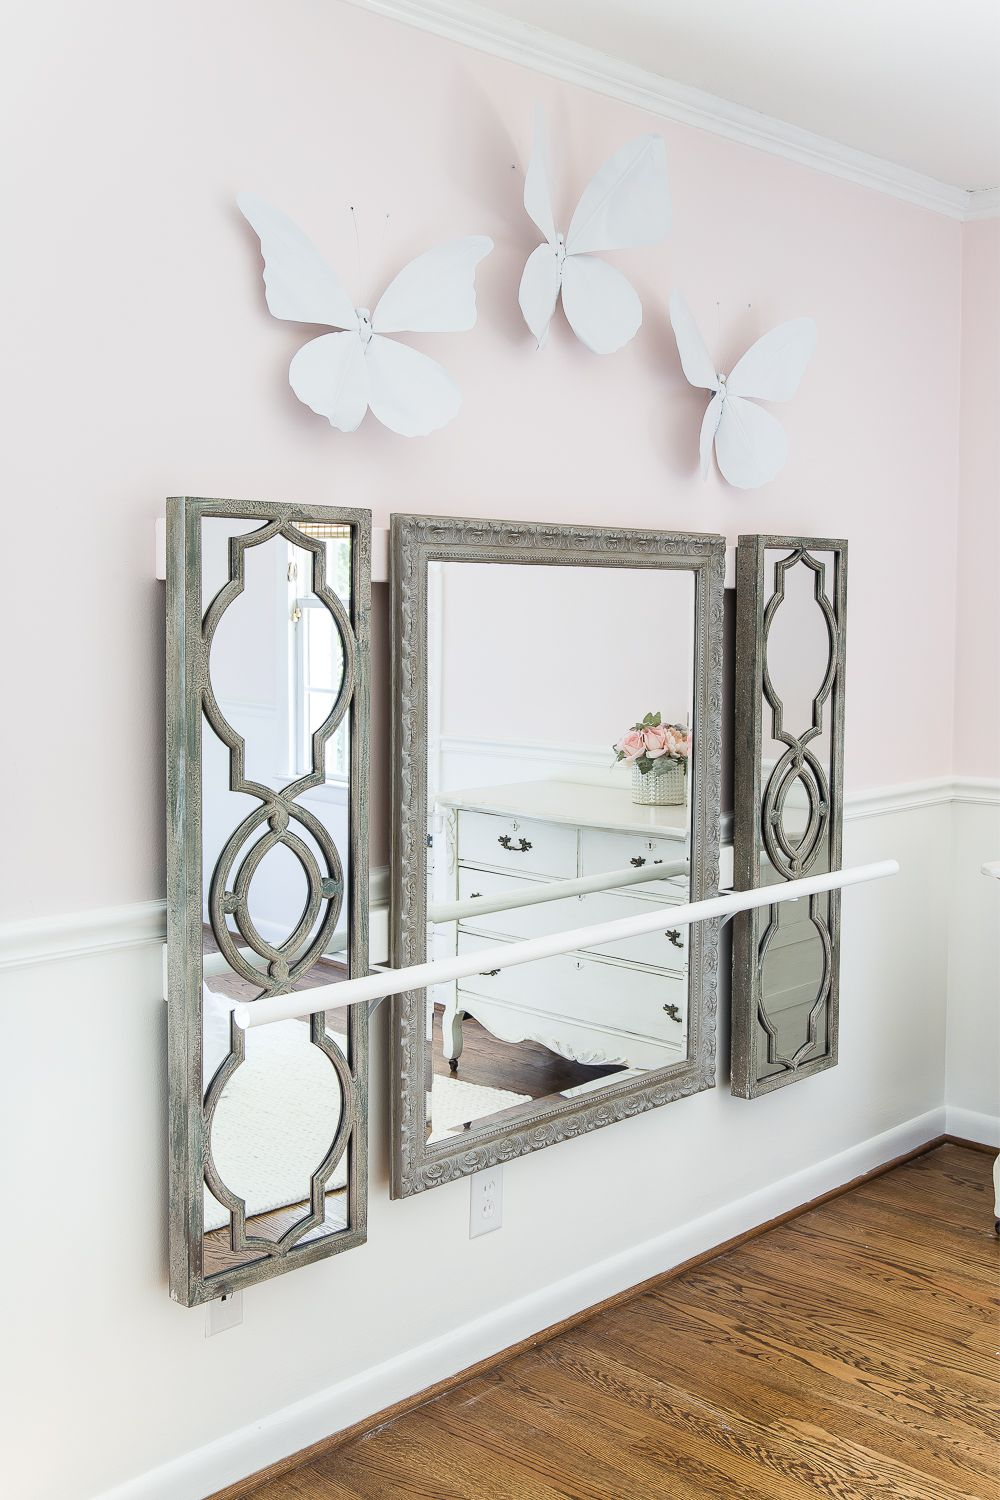 Diy Ballet Barre And How To Hang Wall Decor On A Chair Rail Bless Er House Living Room Decor Modern Decor Home Decor